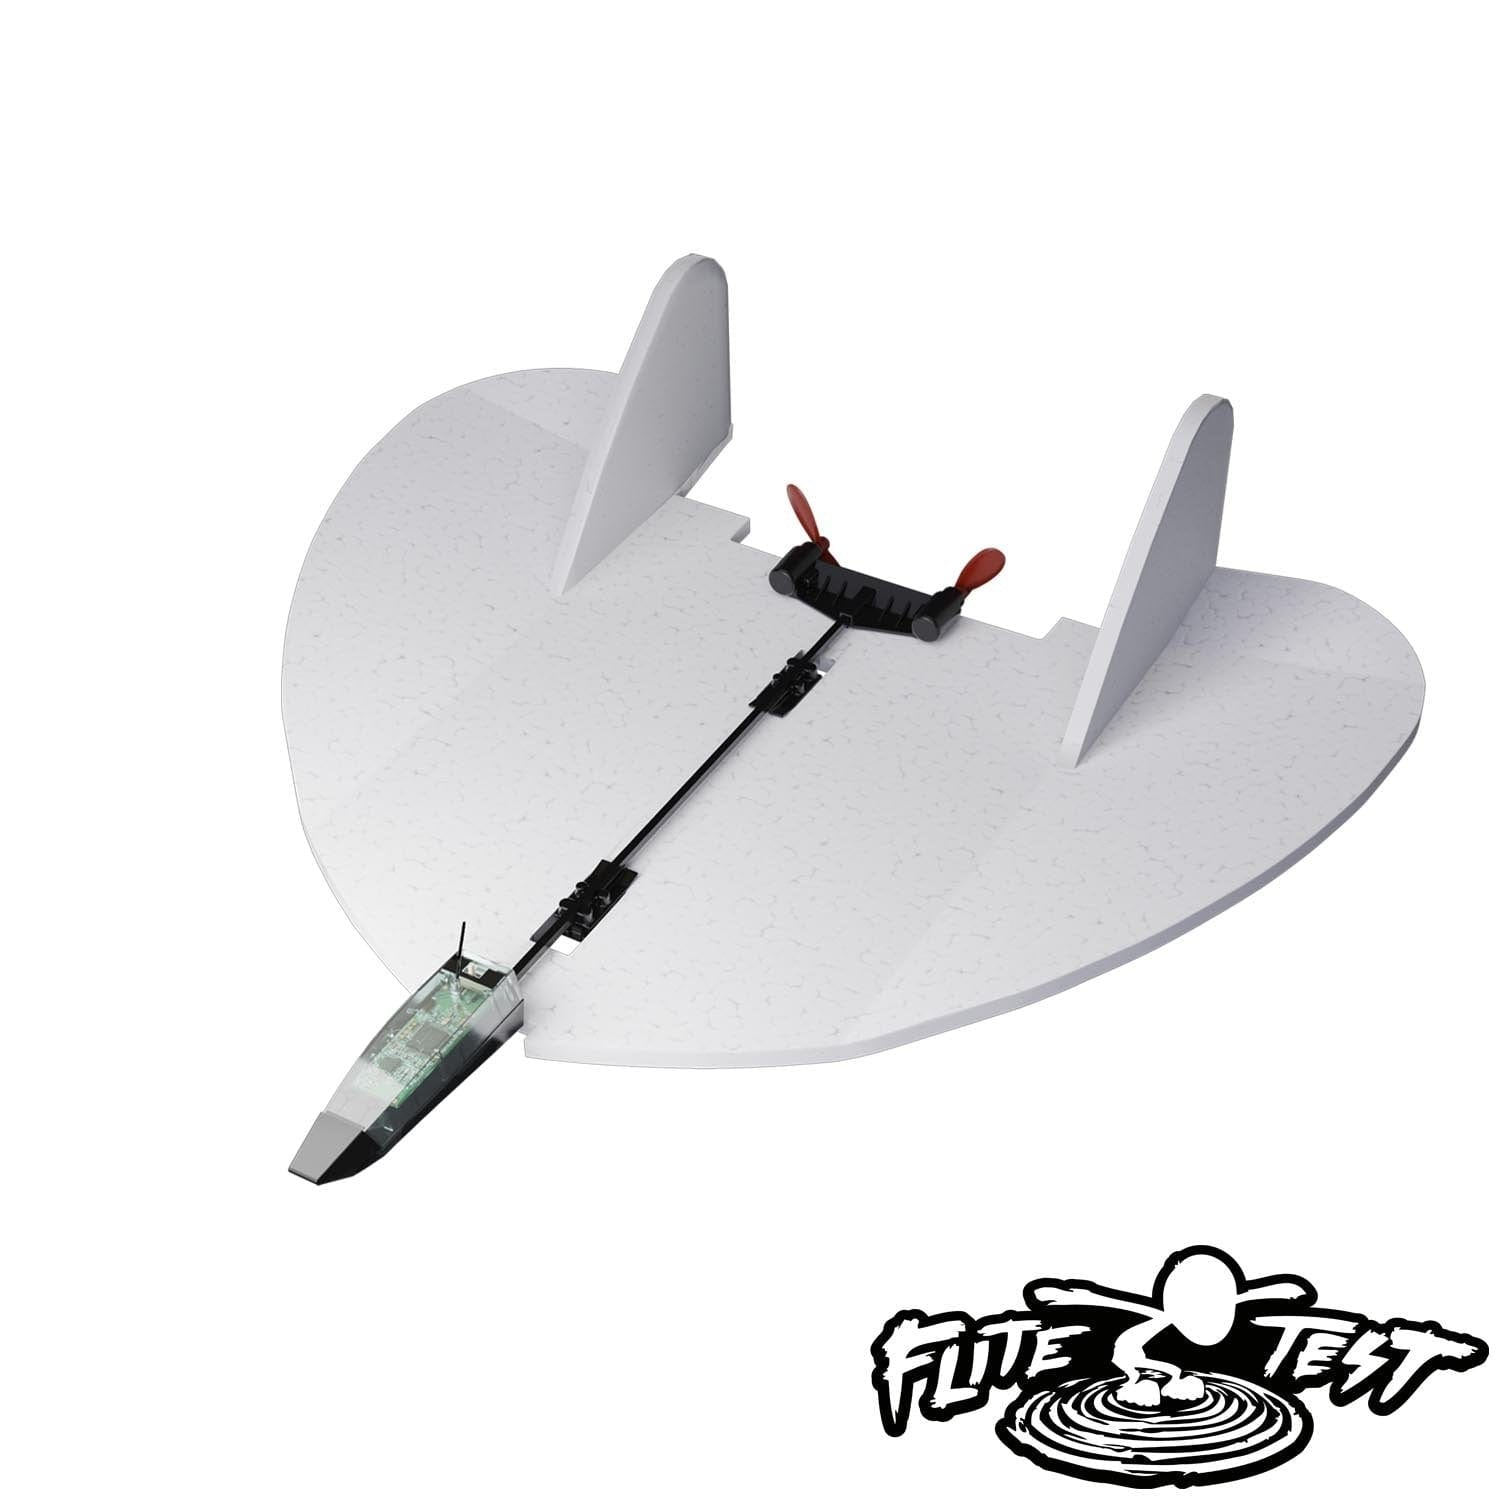 EZ Bug Foam Airplane Kit